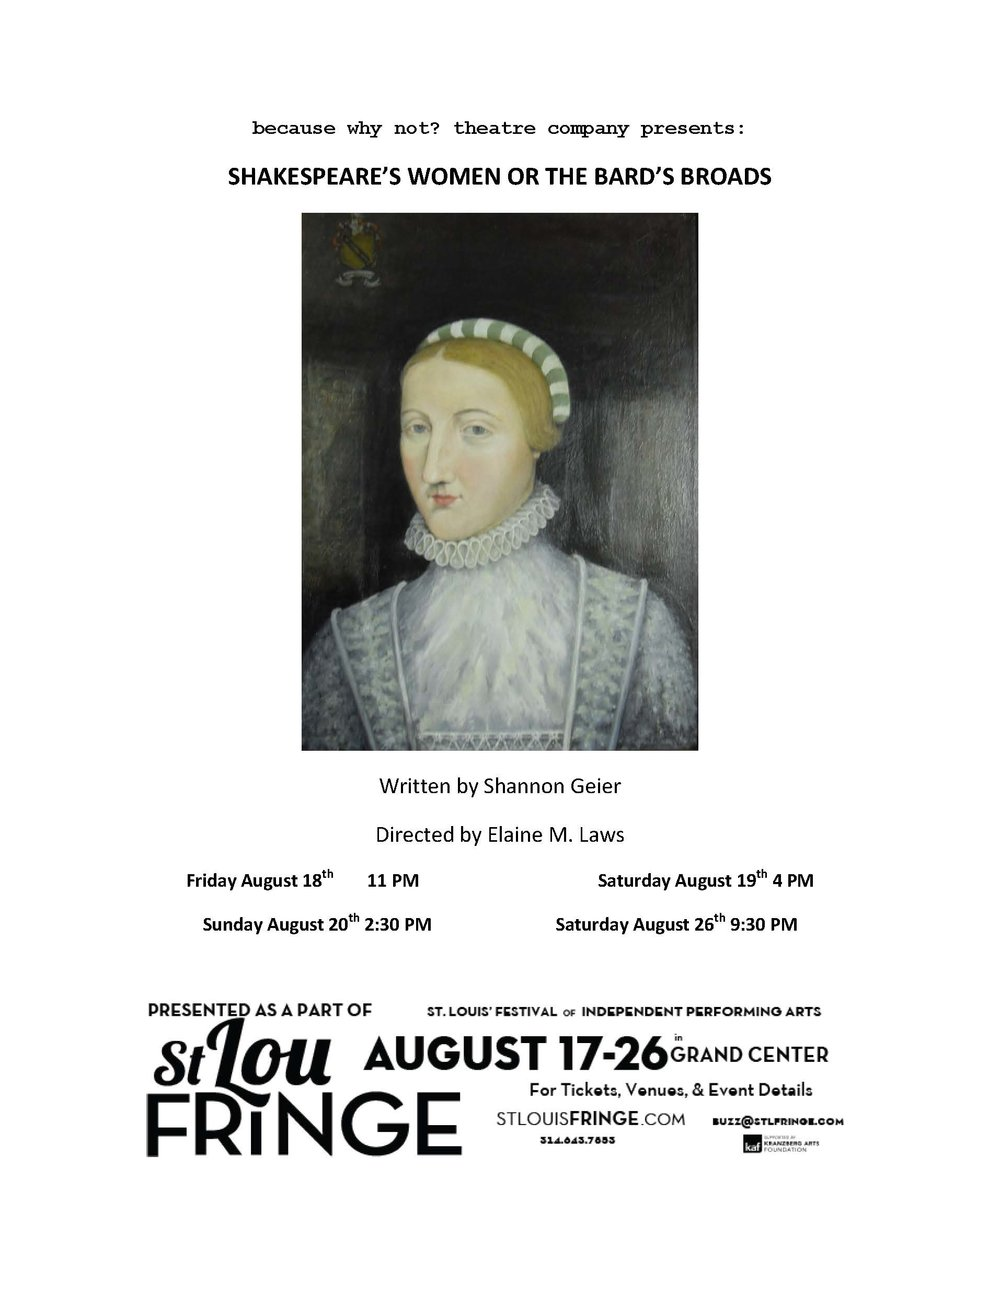 Shakespeare's Women Flier.jpg